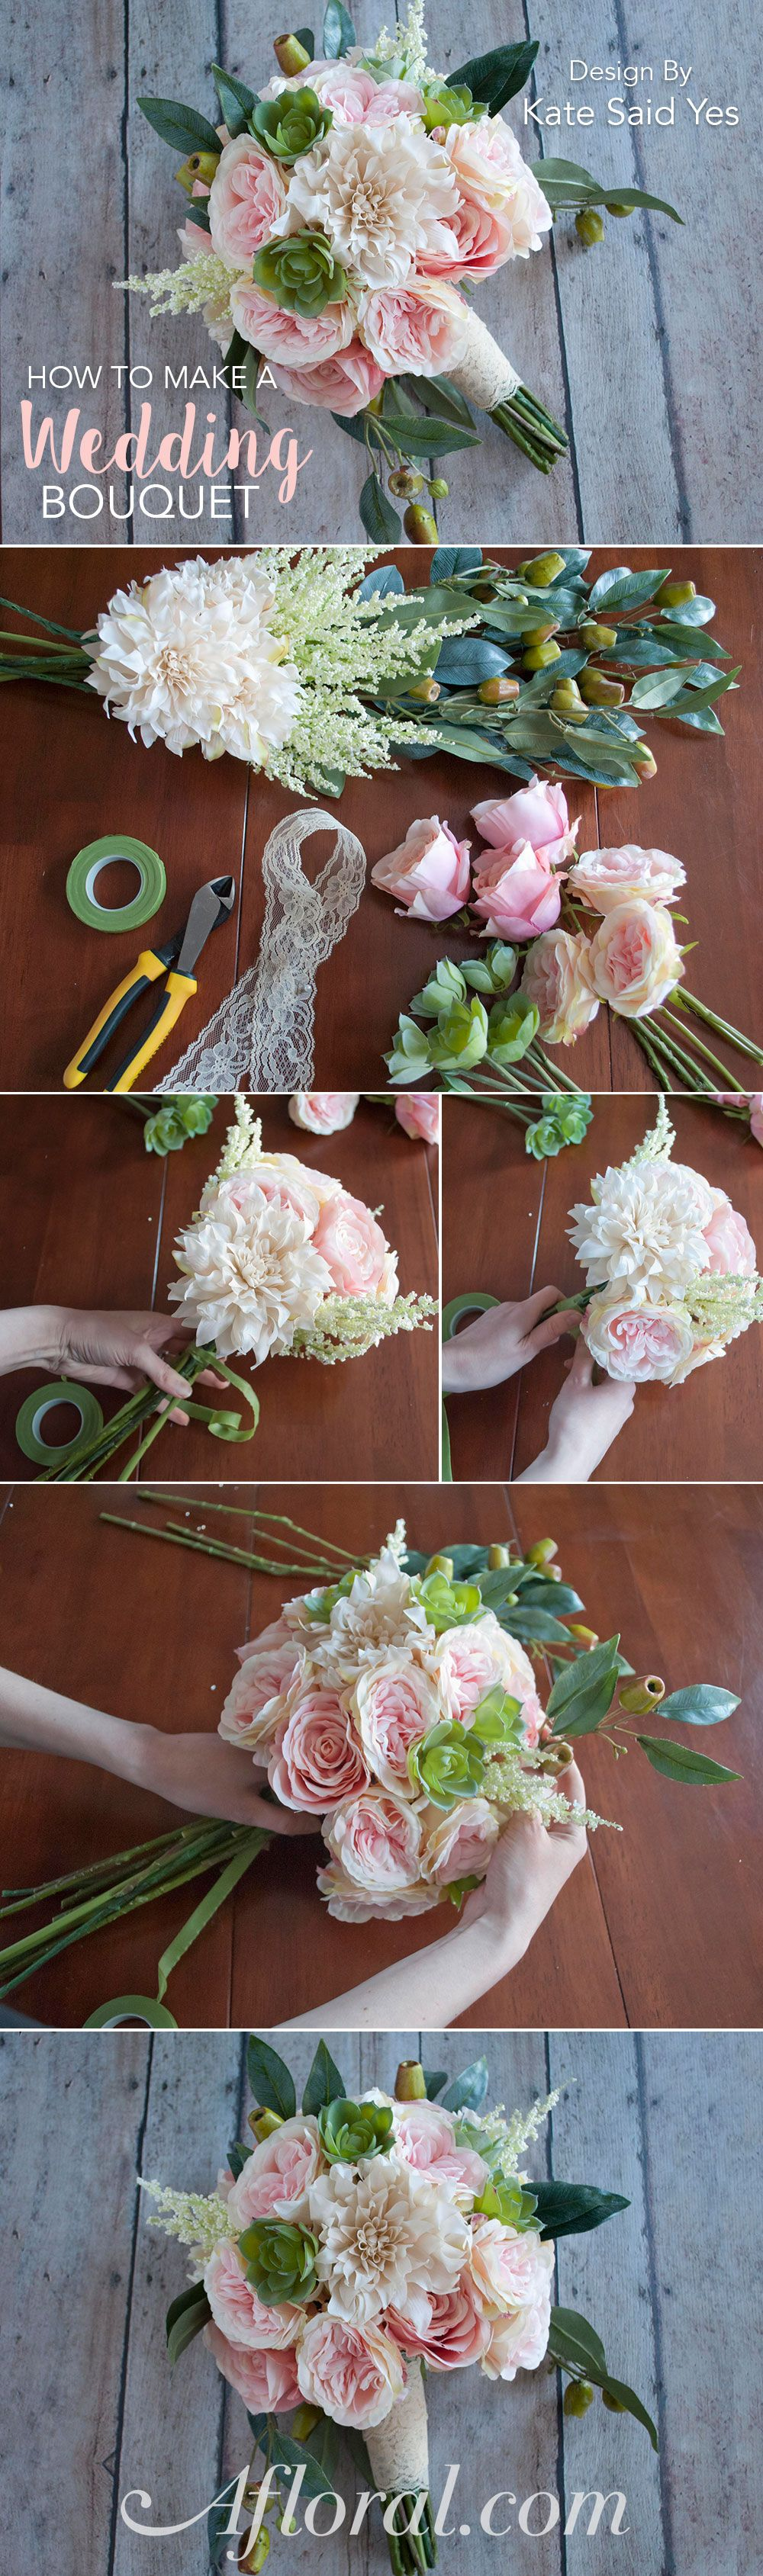 How To Make A Wedding Bouquet | Don\'t Mind If "|1000|3378|?|False|9f4aa7b85ed3d85816f5650ddb97fa32|False|UNLIKELY|0.3480265140533447